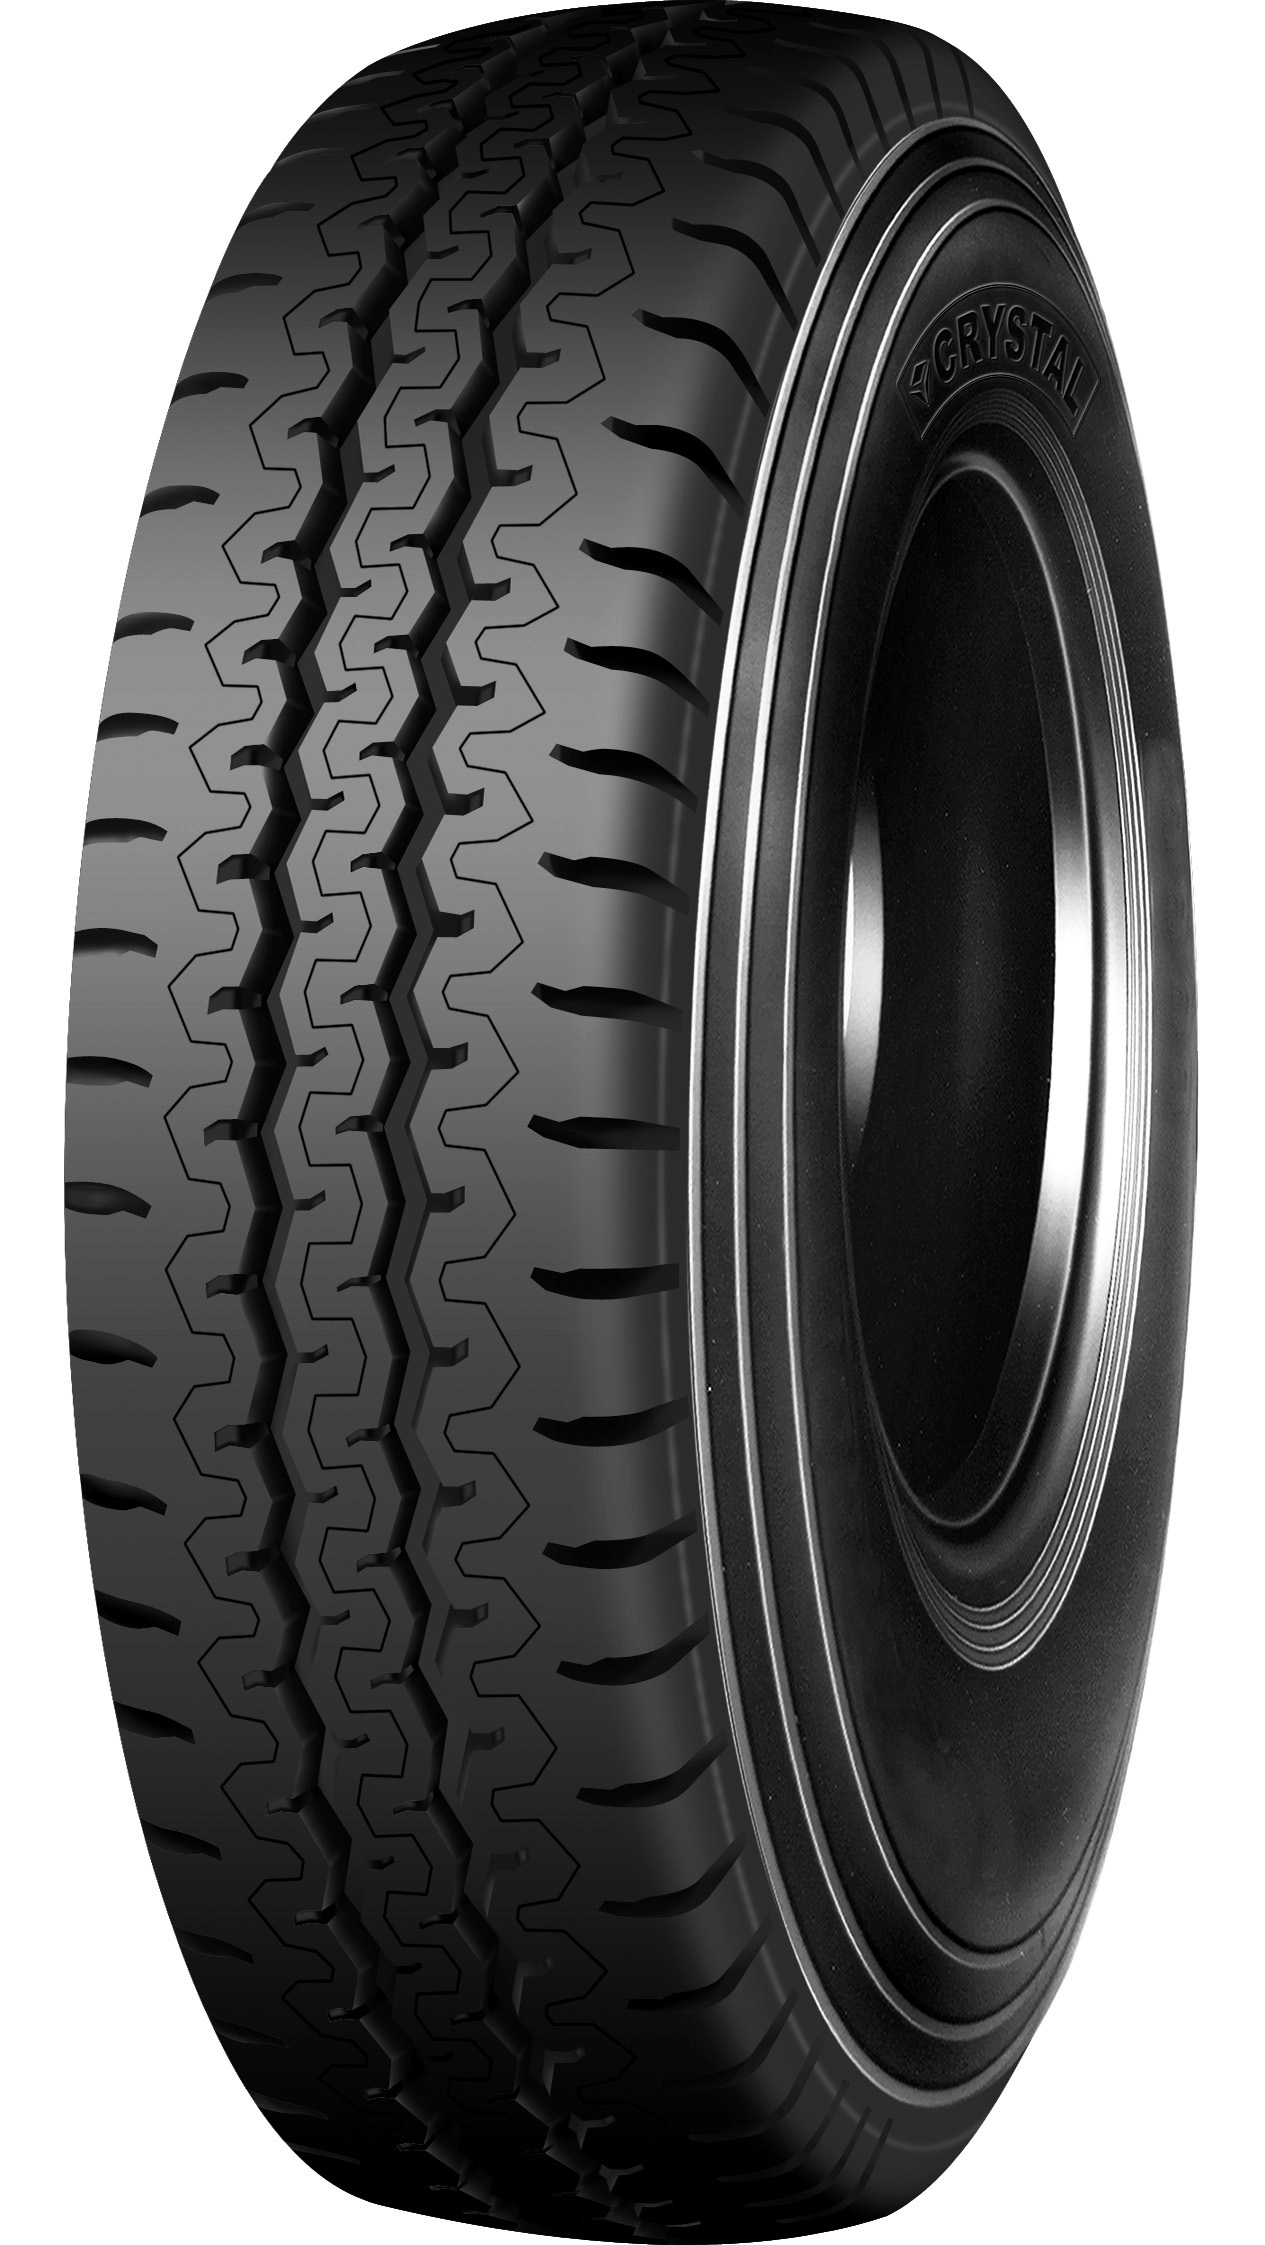 Light Truck Radial (LTR) Tyre